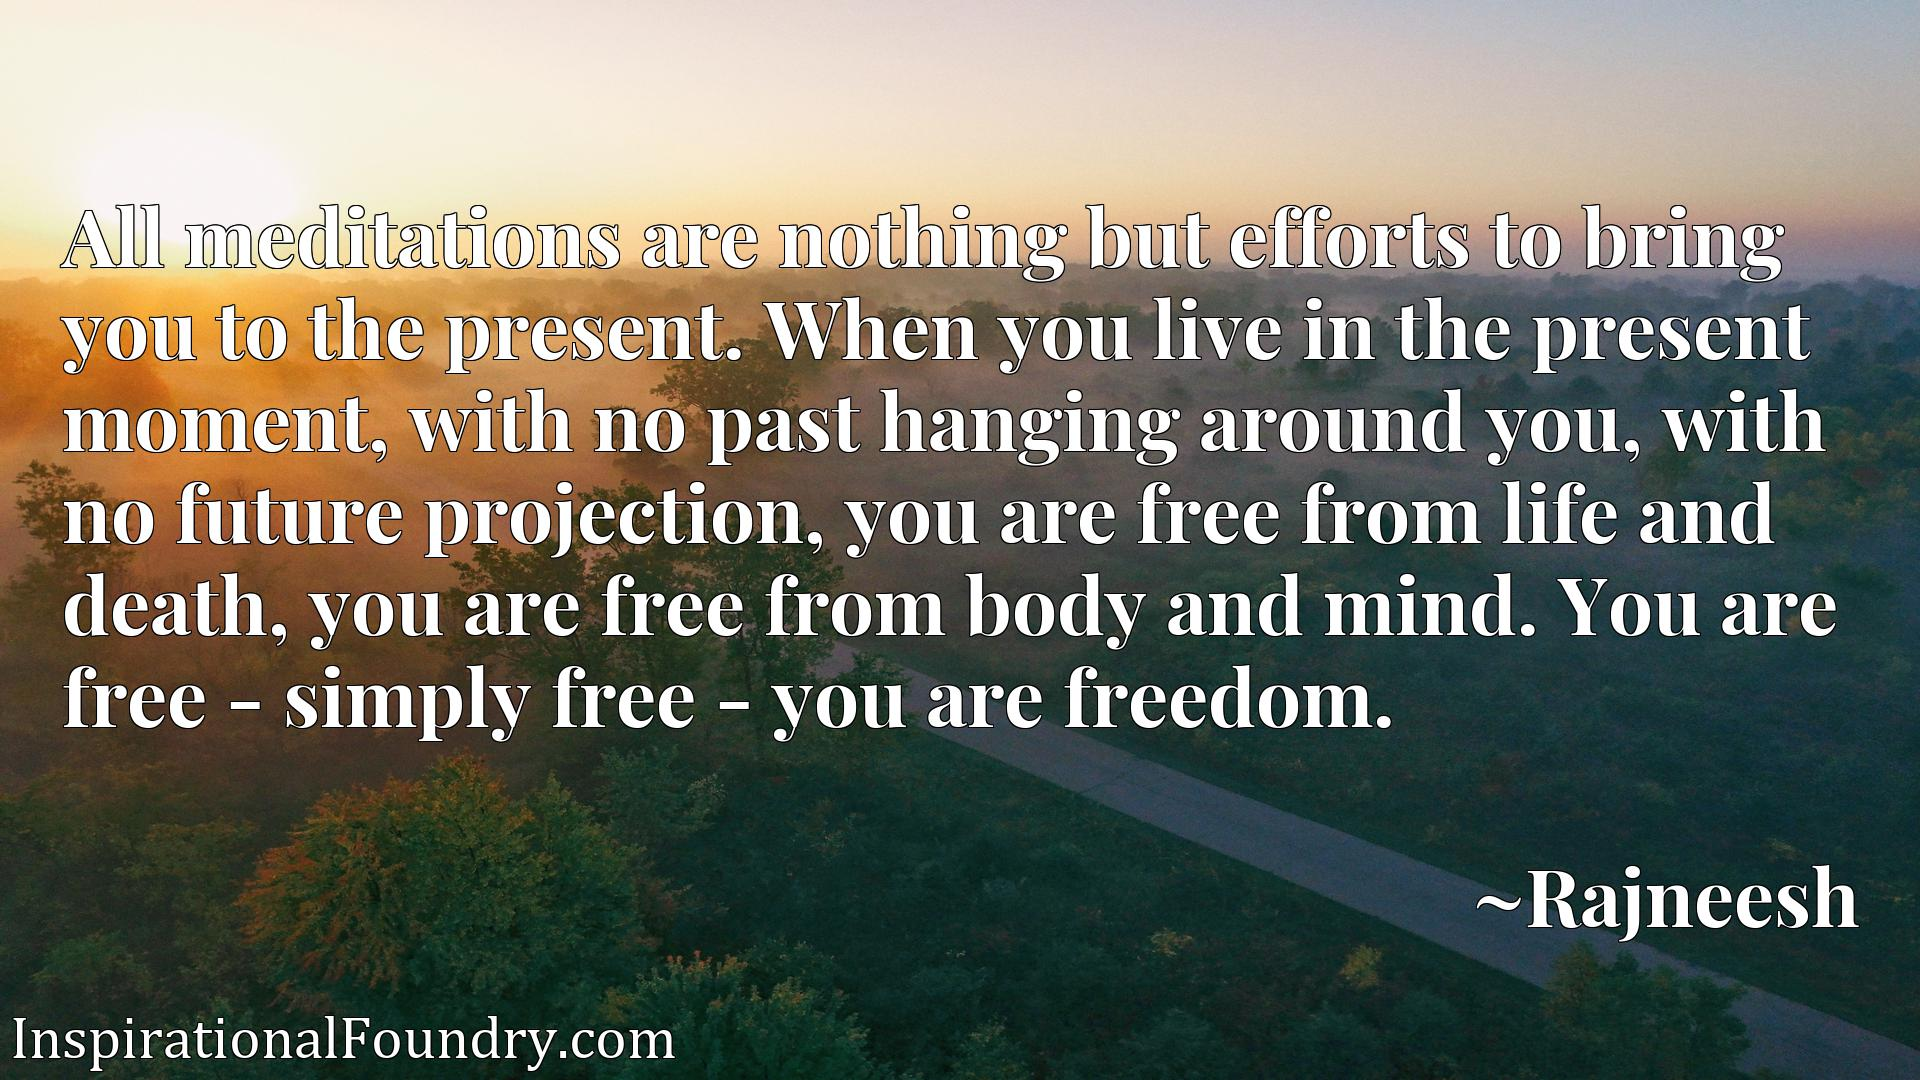 All meditations are nothing but efforts to bring you to the present. When you live in the present moment, with no past hanging around you, with no future projection, you are free from life and death, you are free from body and mind. You are free - simply free - you are freedom.